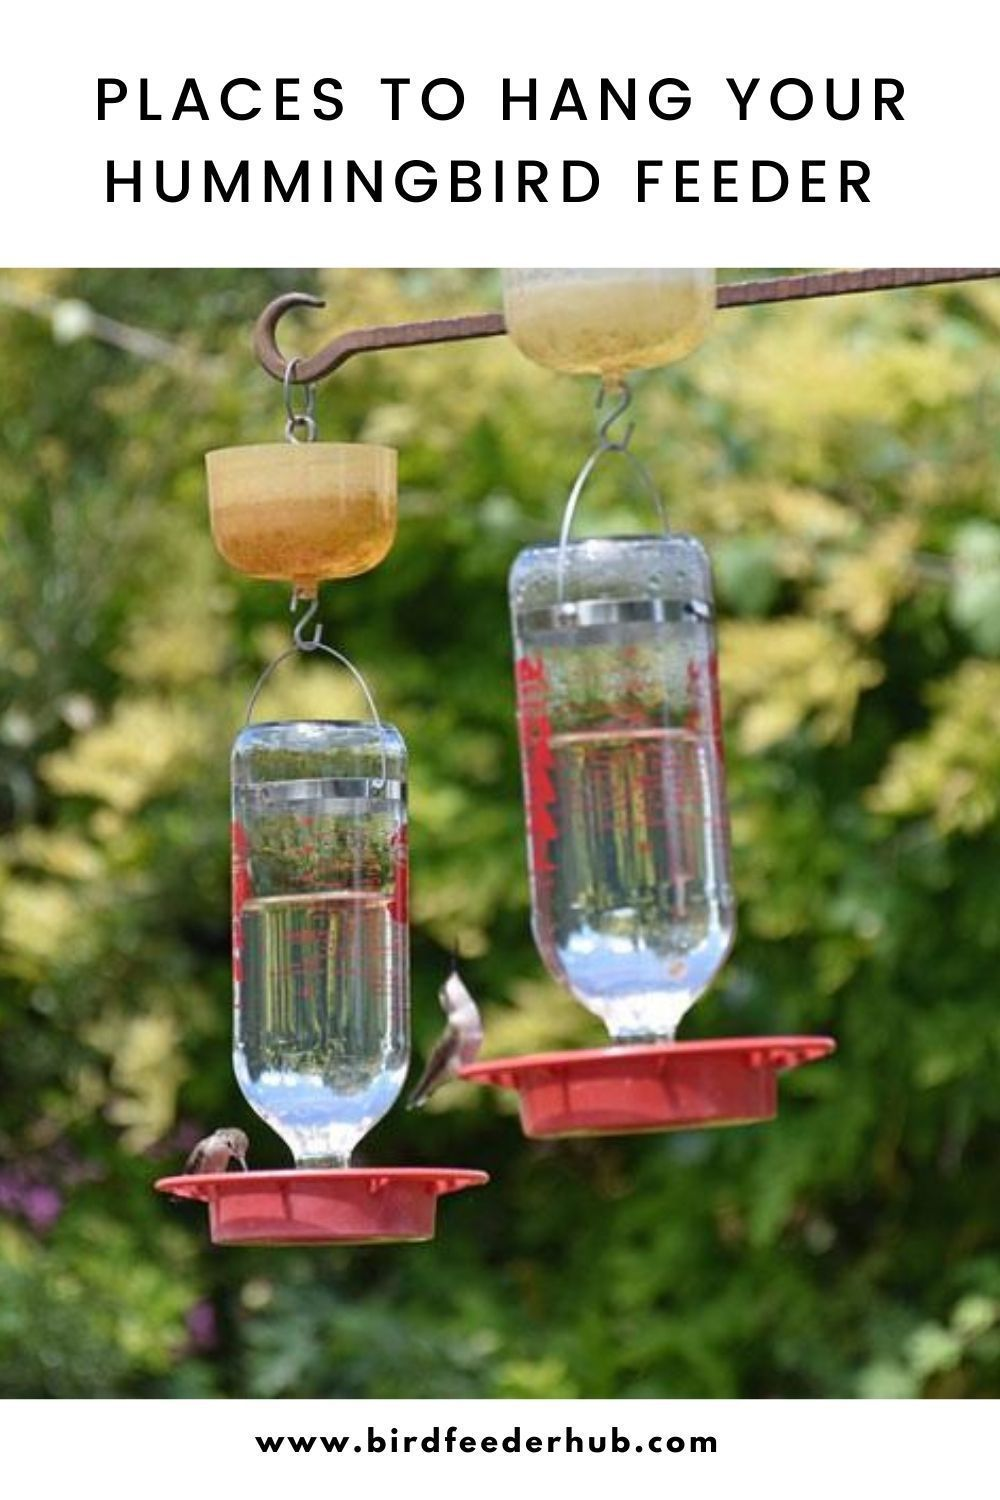 Places To Hang Your Hummingbird Feeder in 2020 Humming